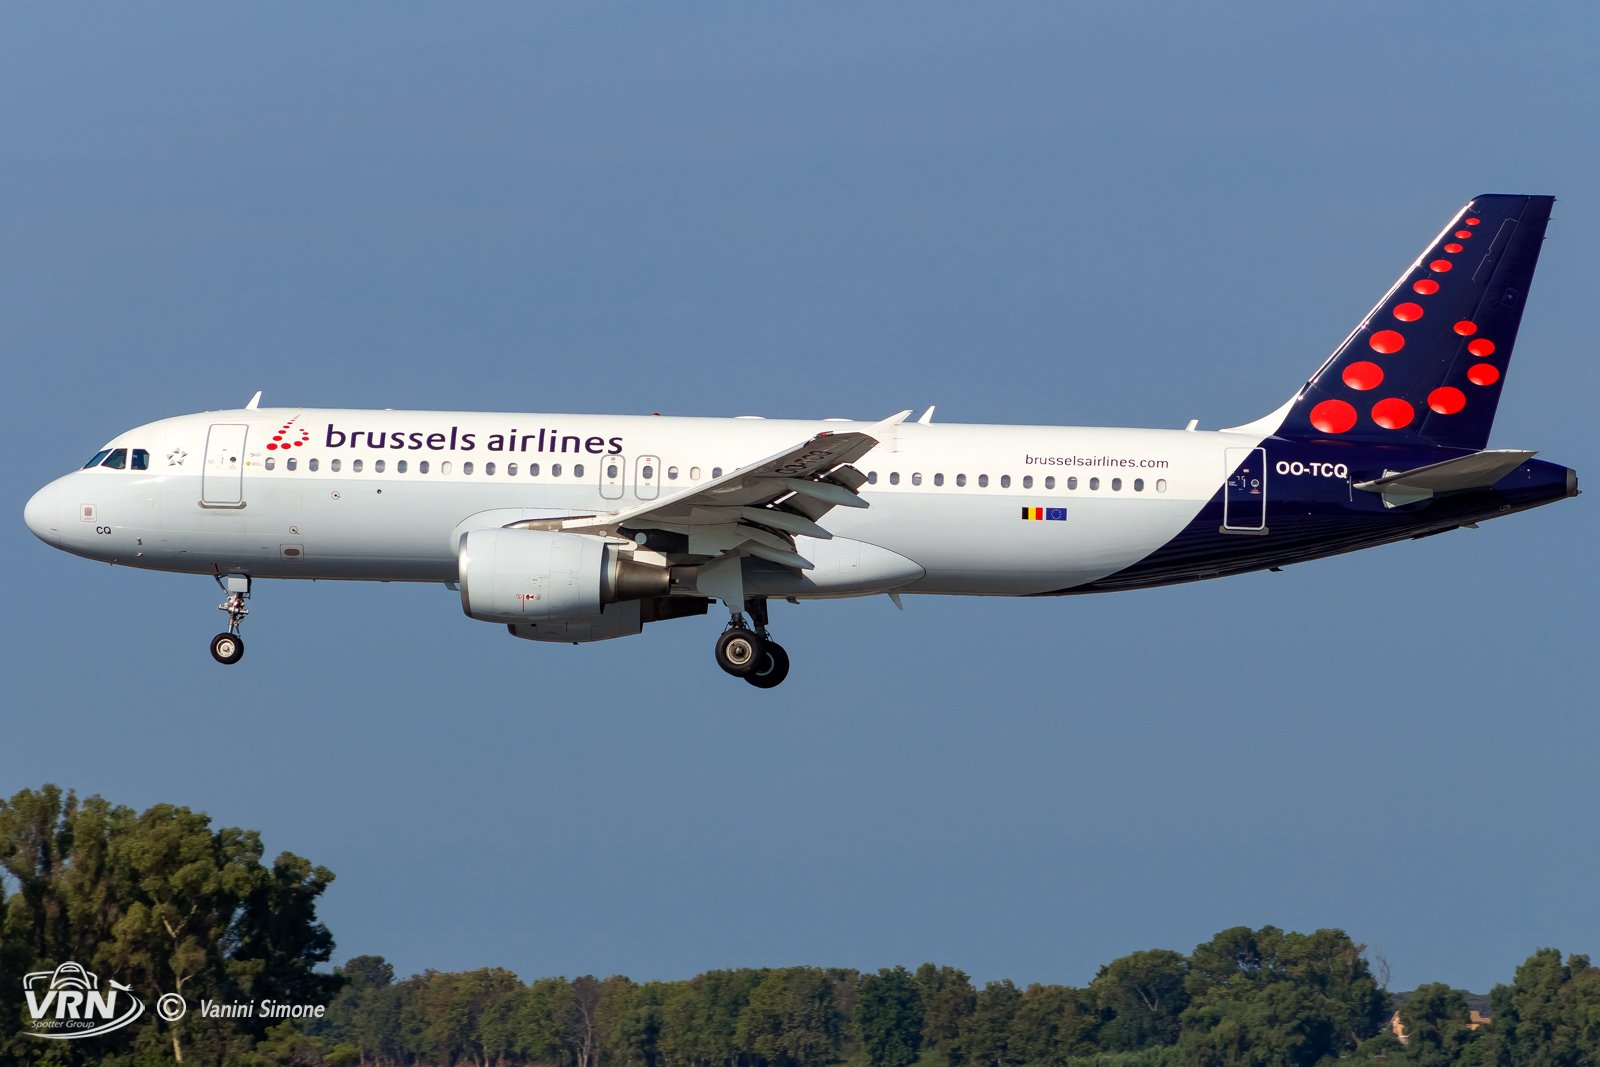 20180824-OO-TCQ-BRUSSELS AIRLINES-FCO-VANINI SIMONE